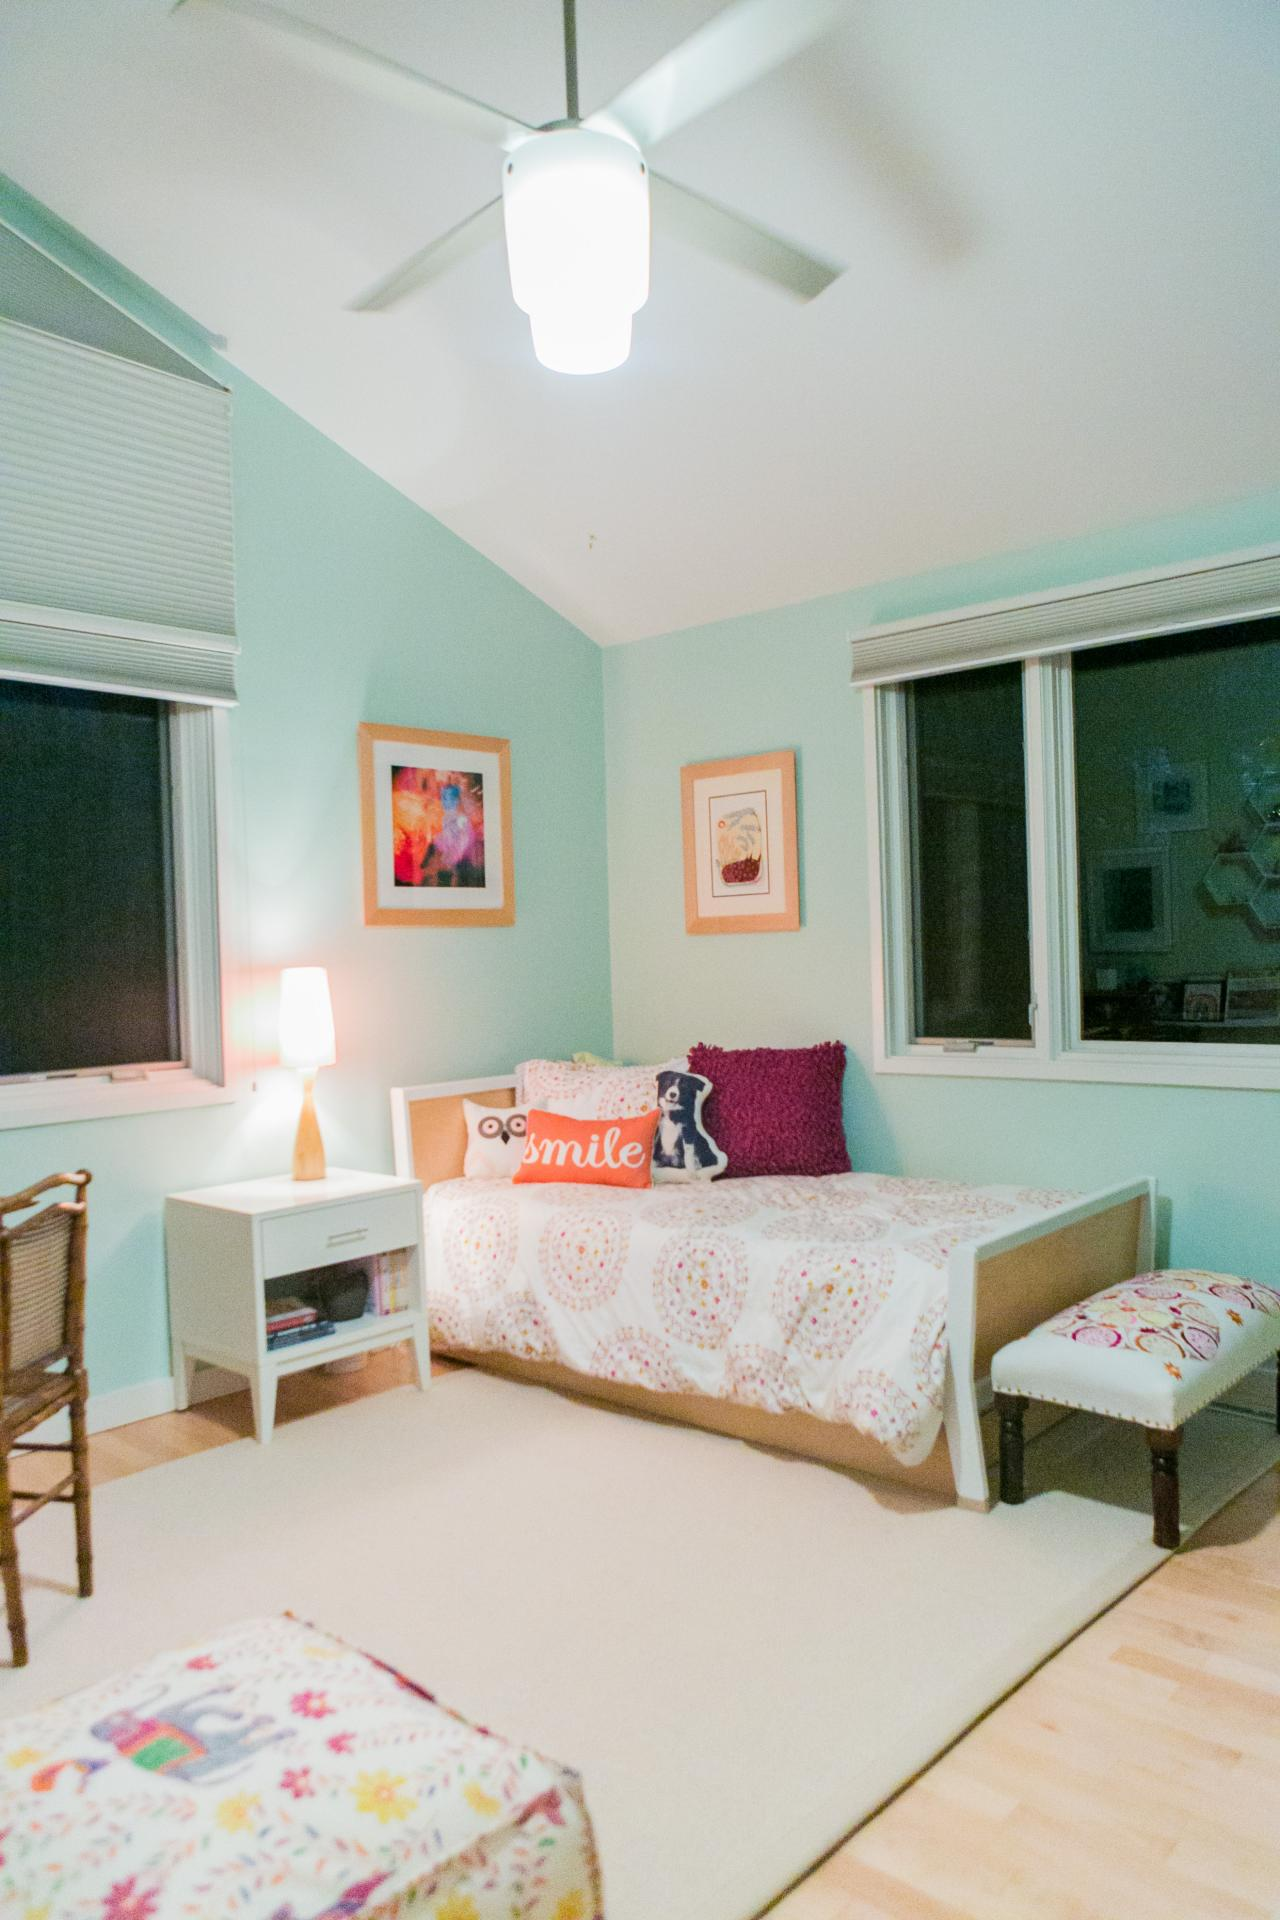 Modern Room Designs And Colors: 20 Midcentury Kids Room Design Ideas